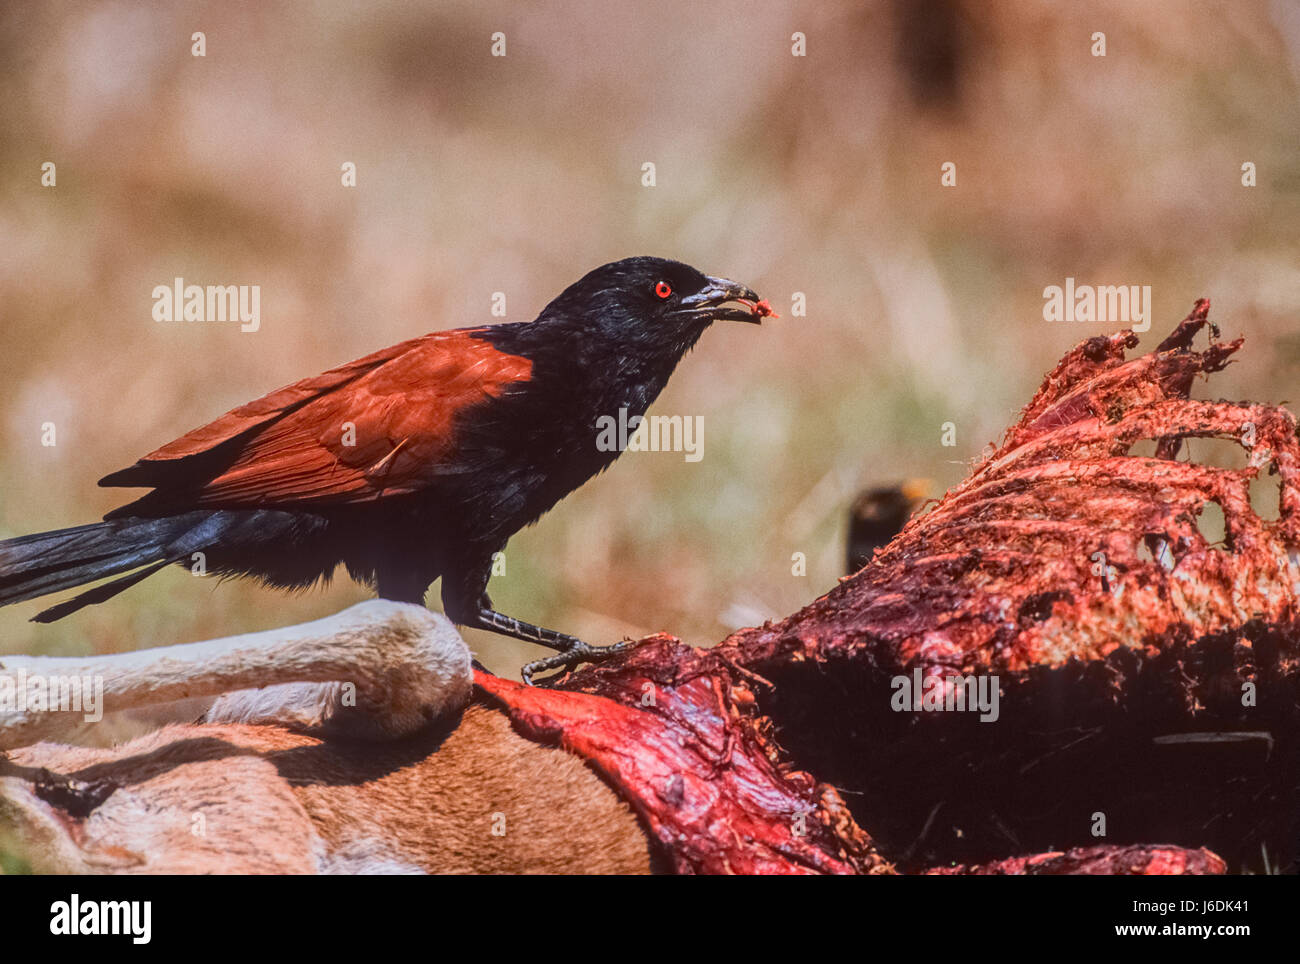 Greater Coucal, Centropus sinensis, feeding on a Spotted Deer, Axis Deer or Chittal, Keoladeo Ghana National Park, - Stock Image